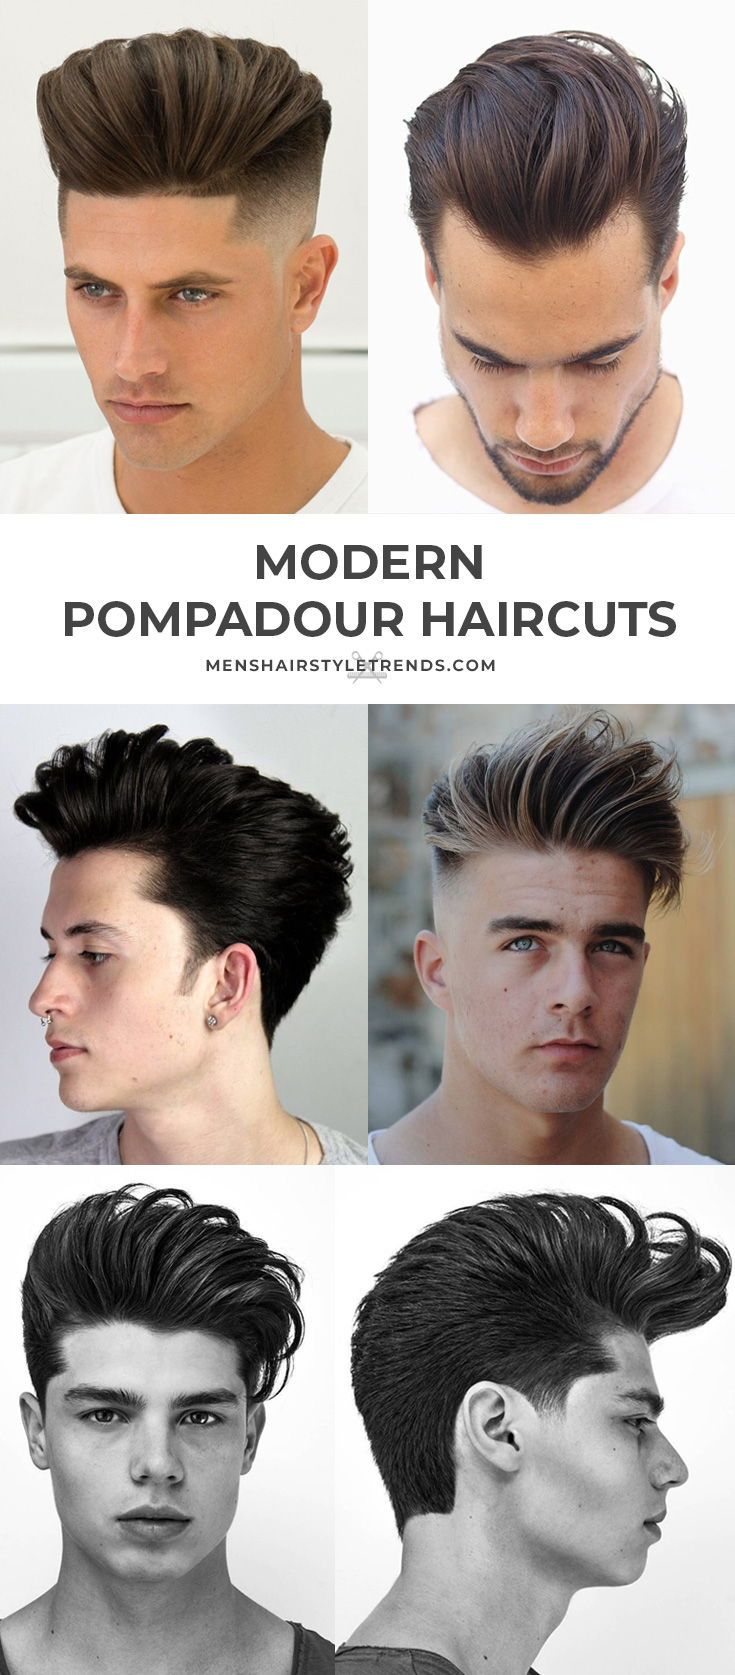 Hairstyle Trends 29 Different Types Of Haircuts On The Radar Right Now Photos Collection In 2020 Types Of Fade Haircut Fade Haircut Faded Hair